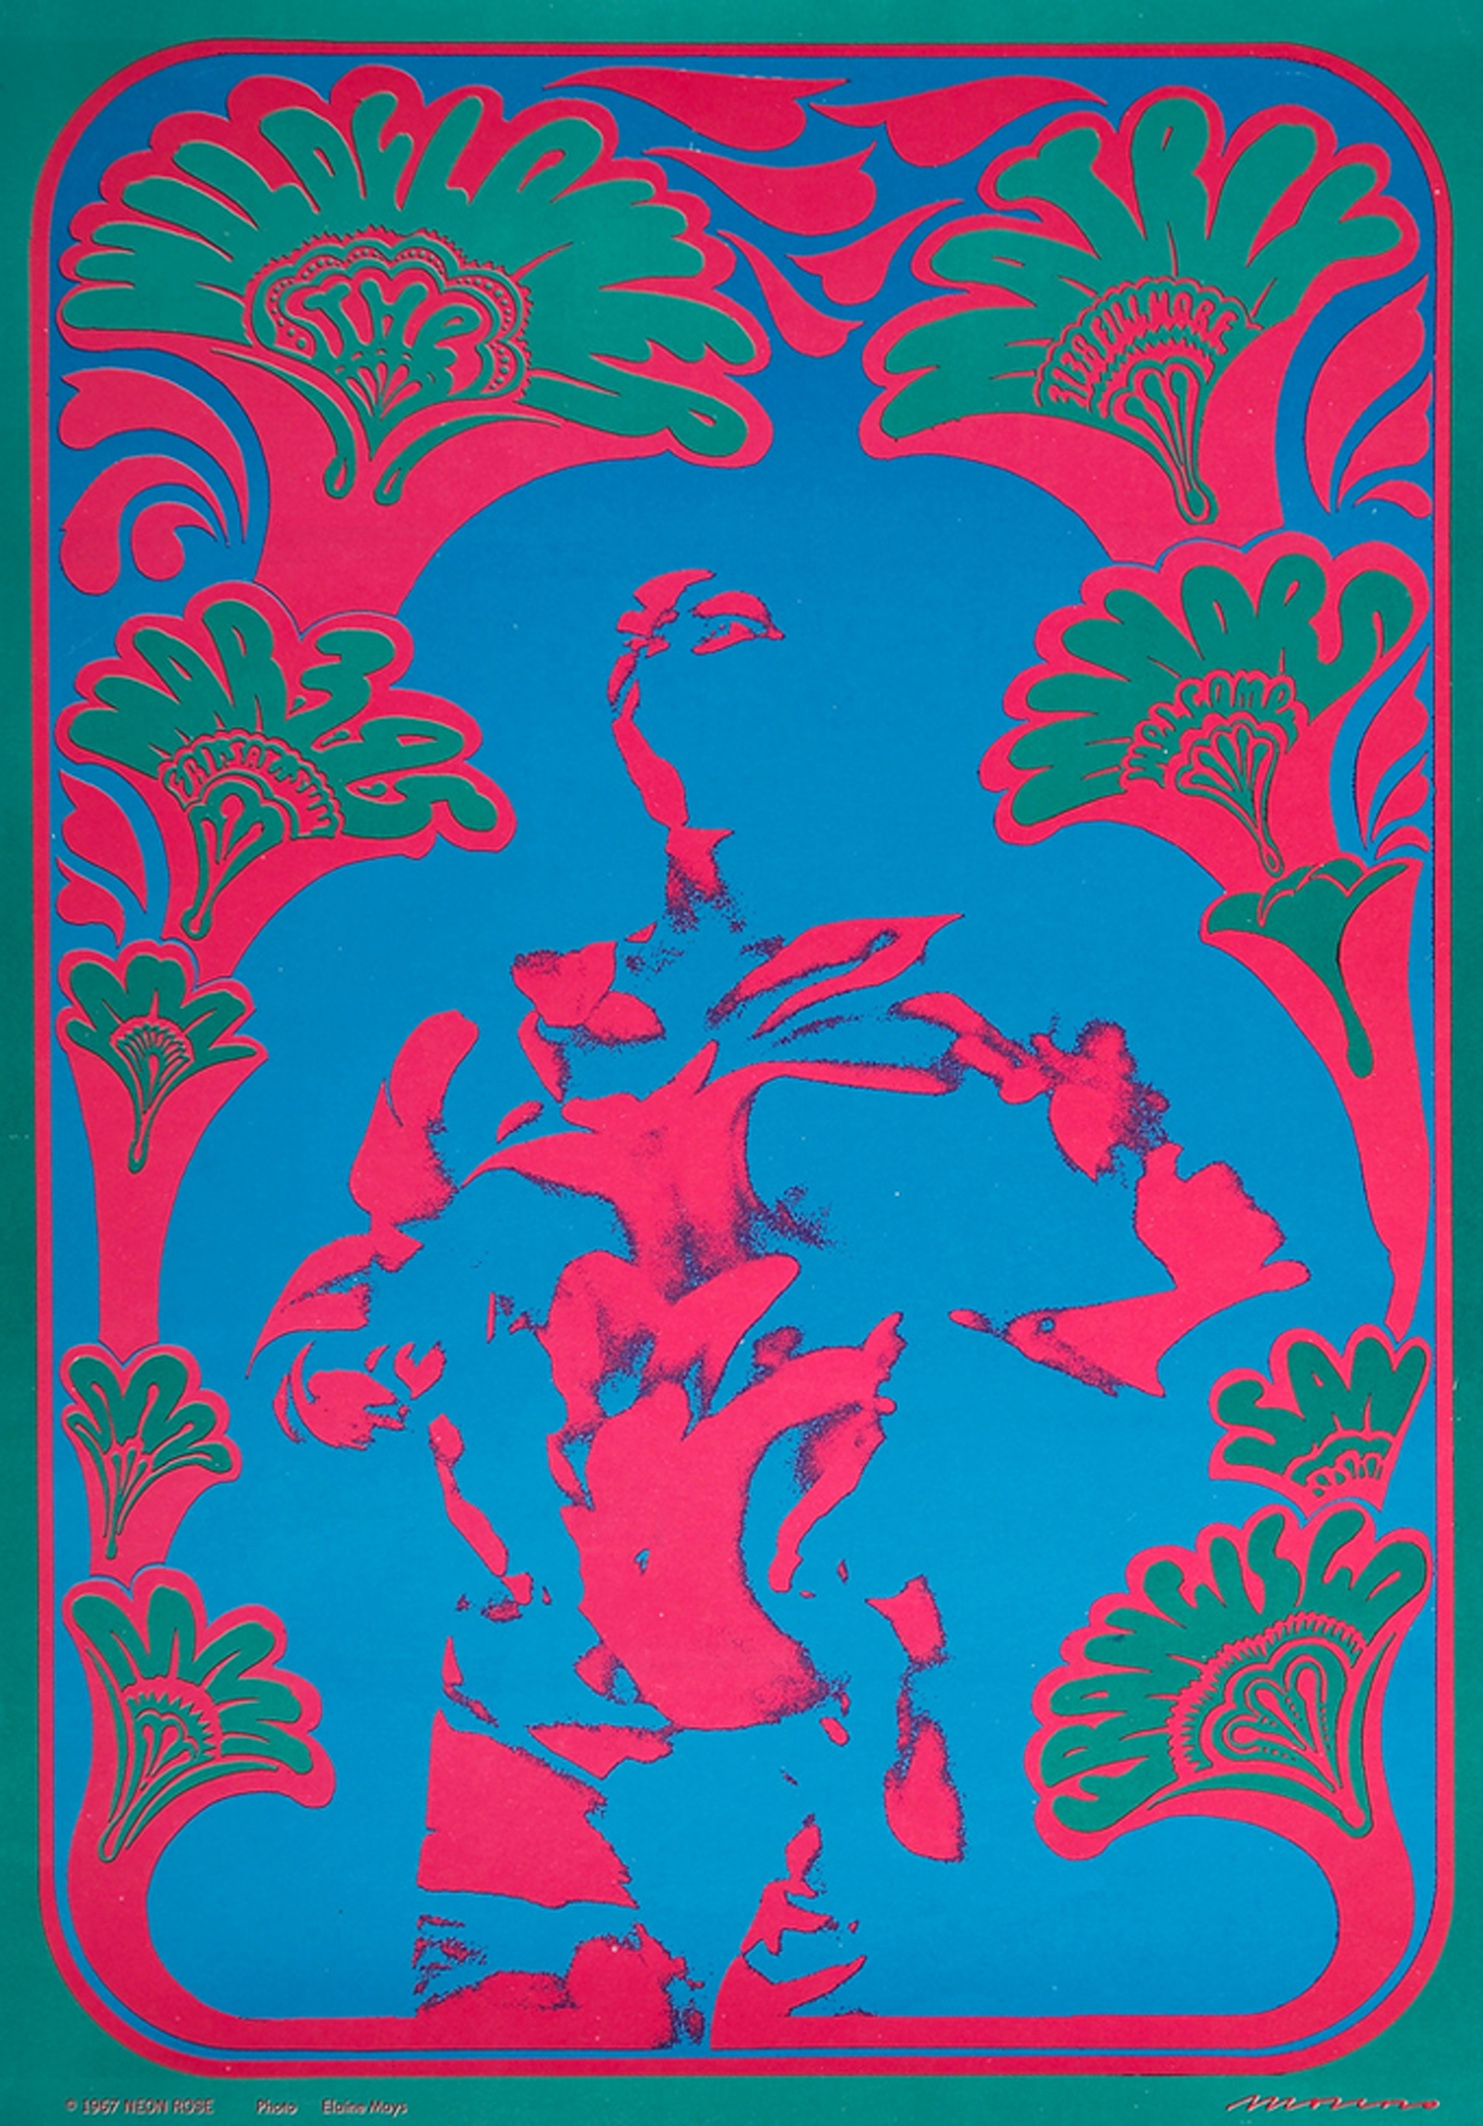 Wildflower Neon Rose Concert Poster 1967